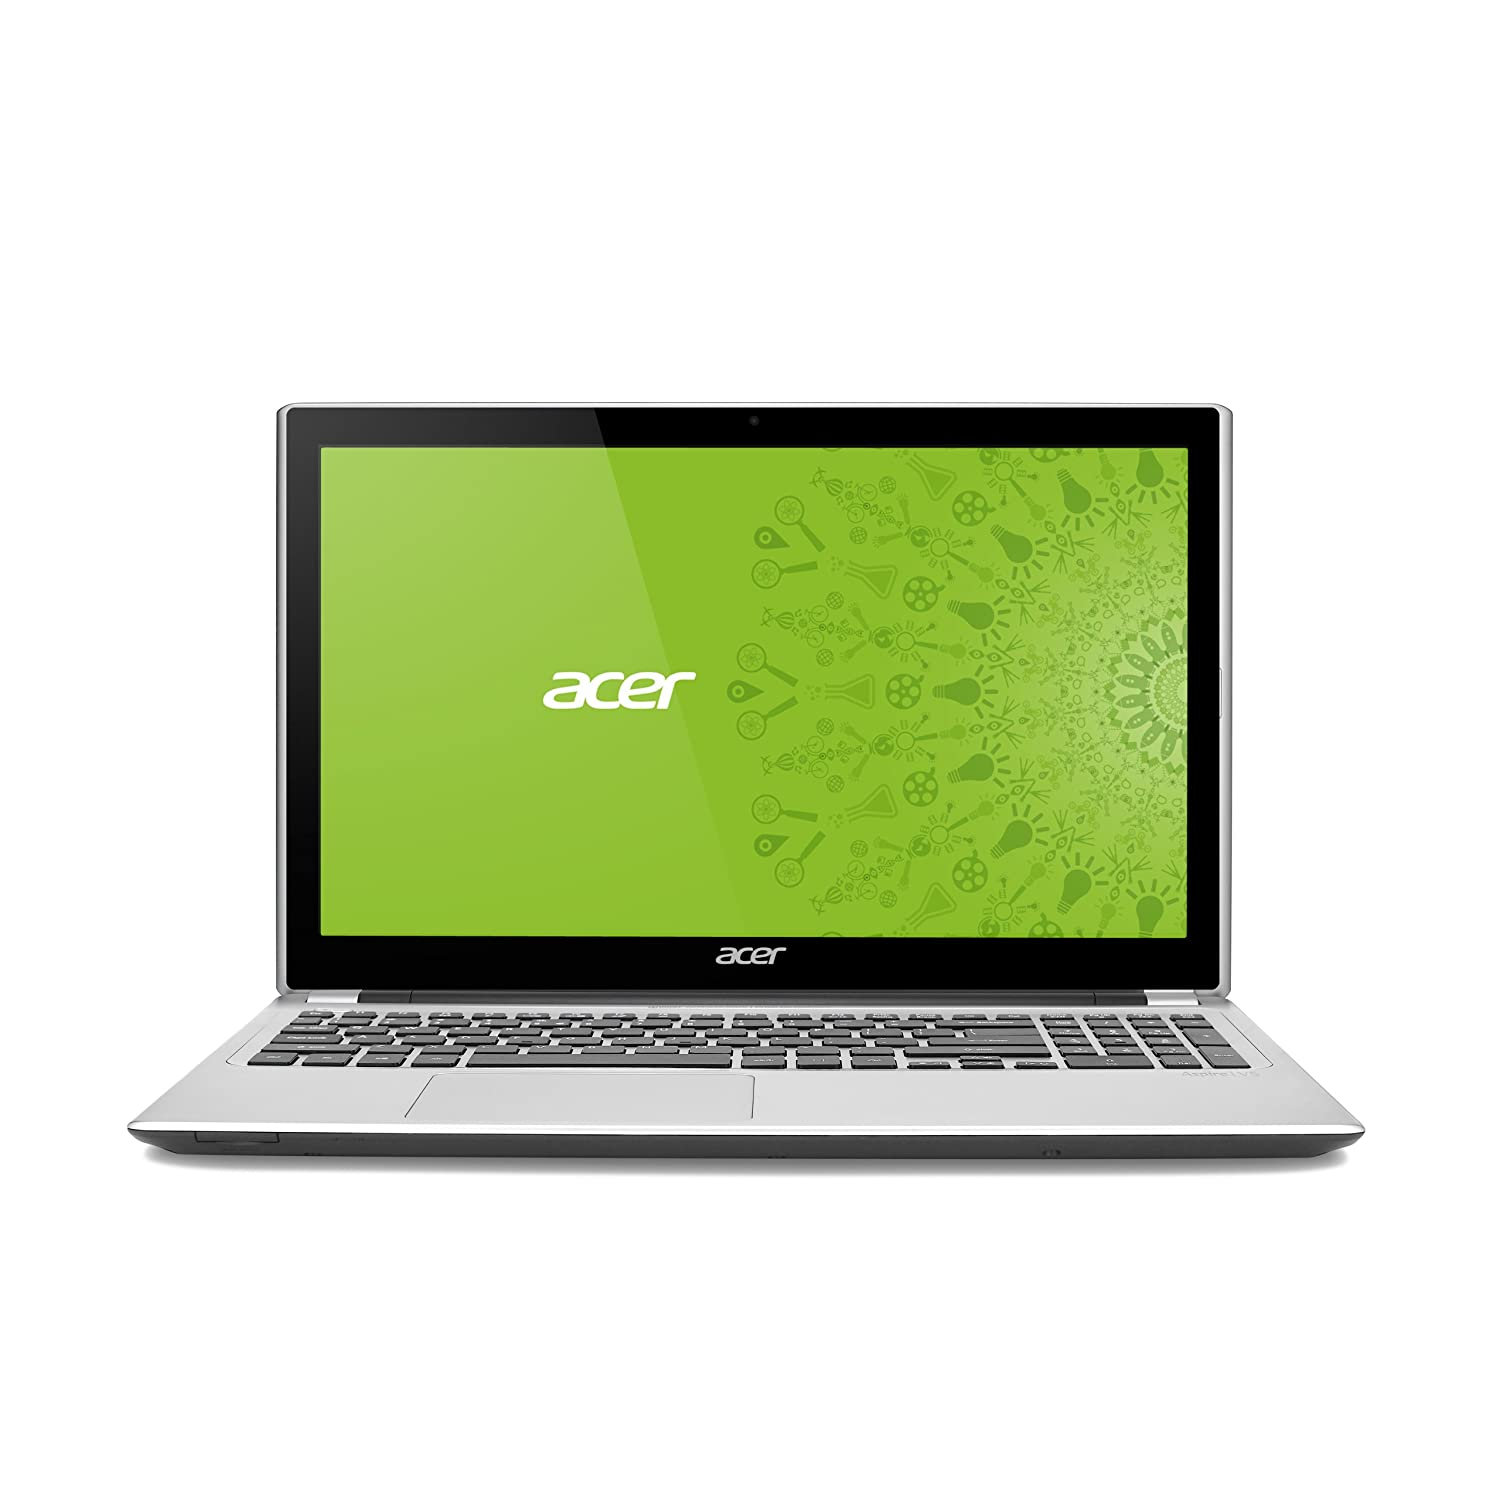 Acer Aspire V5-571P-6642 15.6-Inch Touch Screen Laptop CHECK PRICE NOW